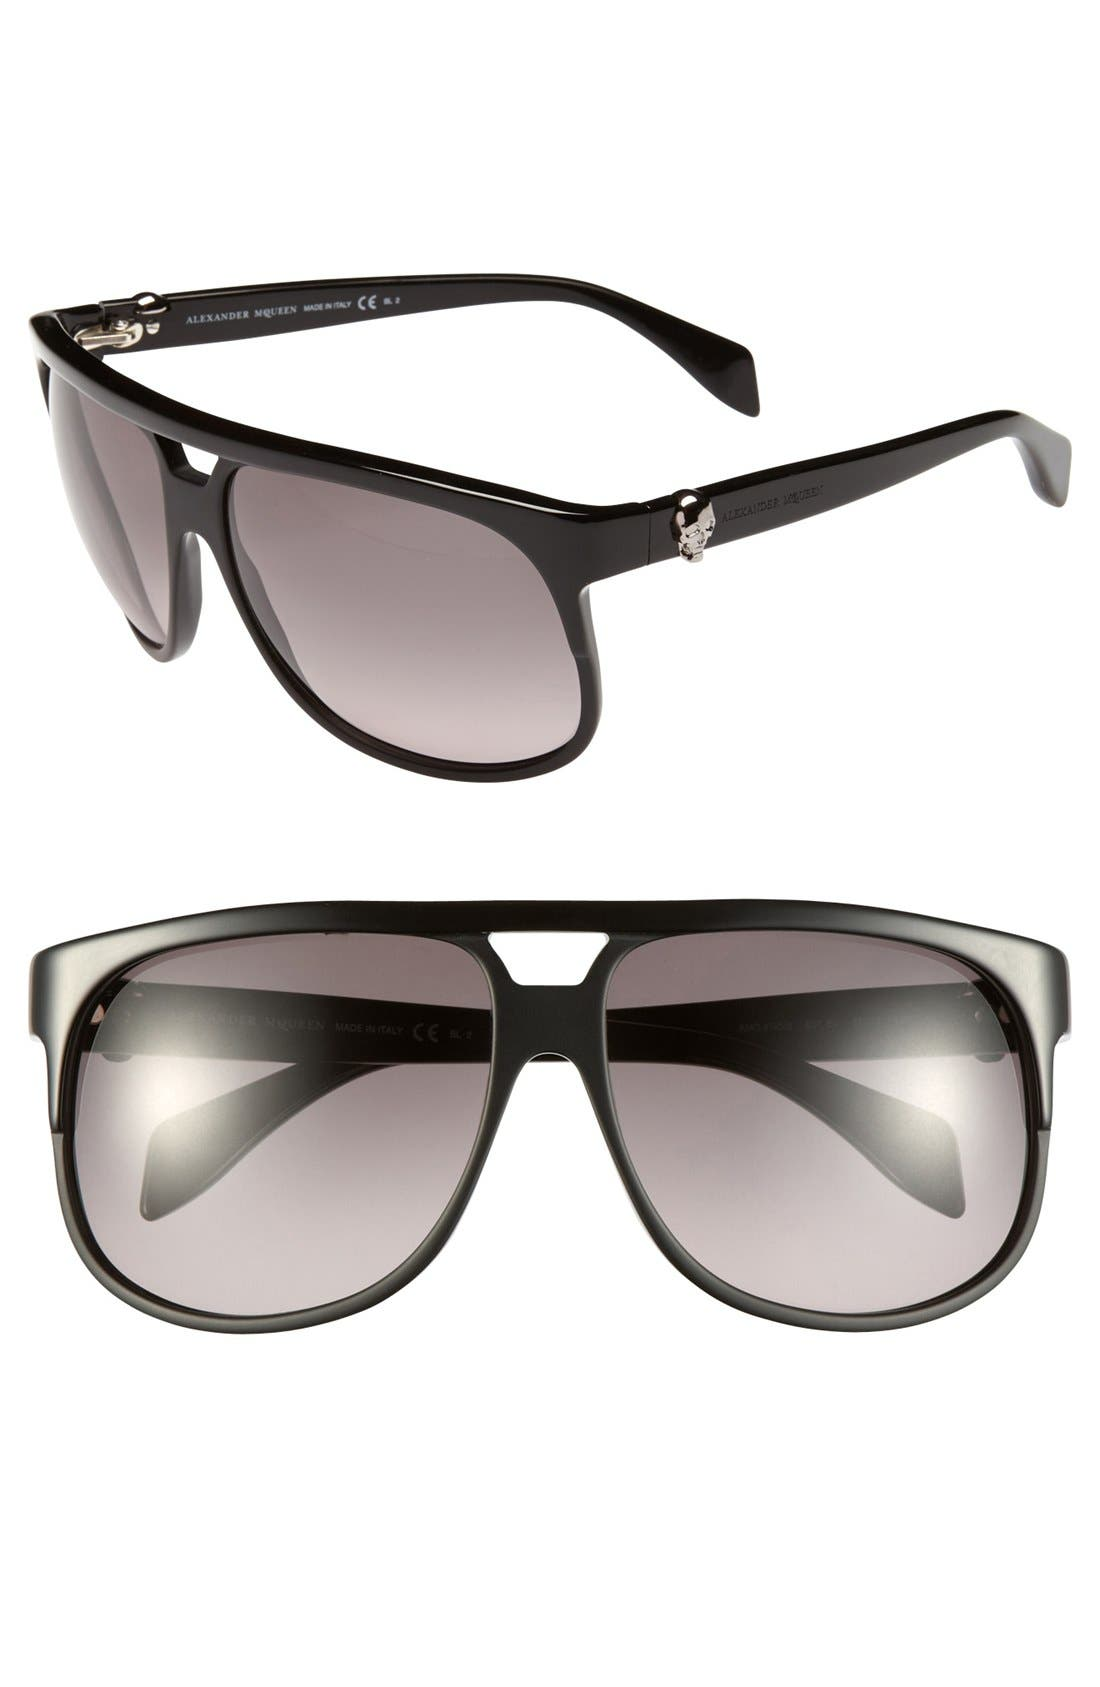 Main Image - Alexander McQueen 60mm Retro Sunglasses